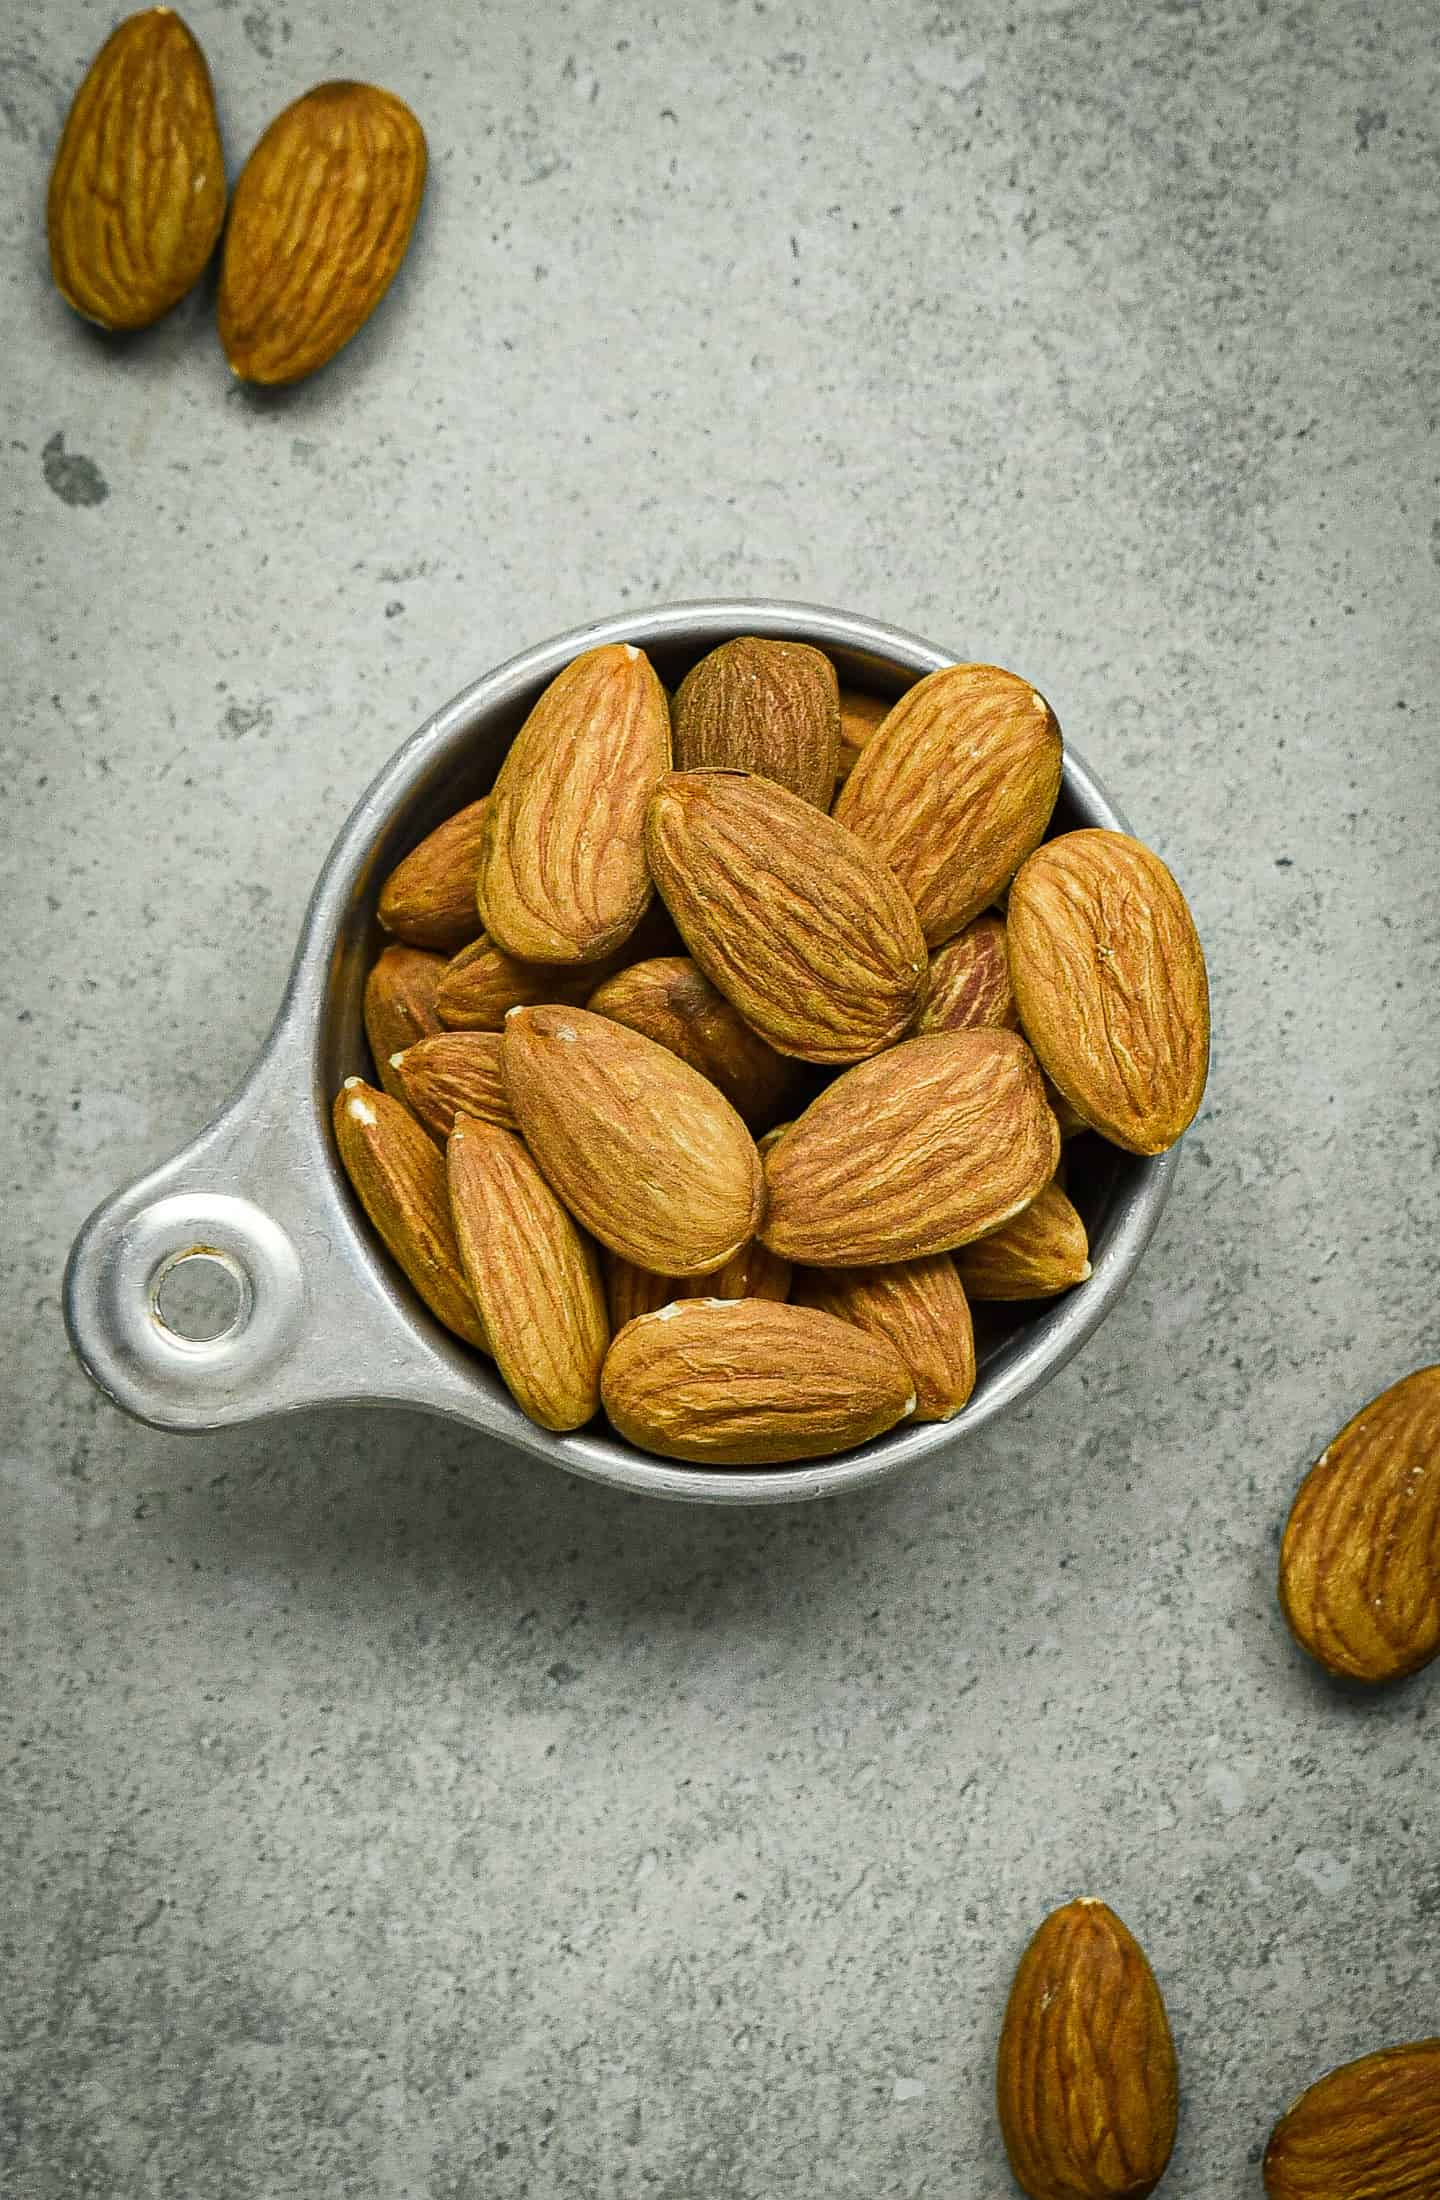 Measuring cup filled with almonds.